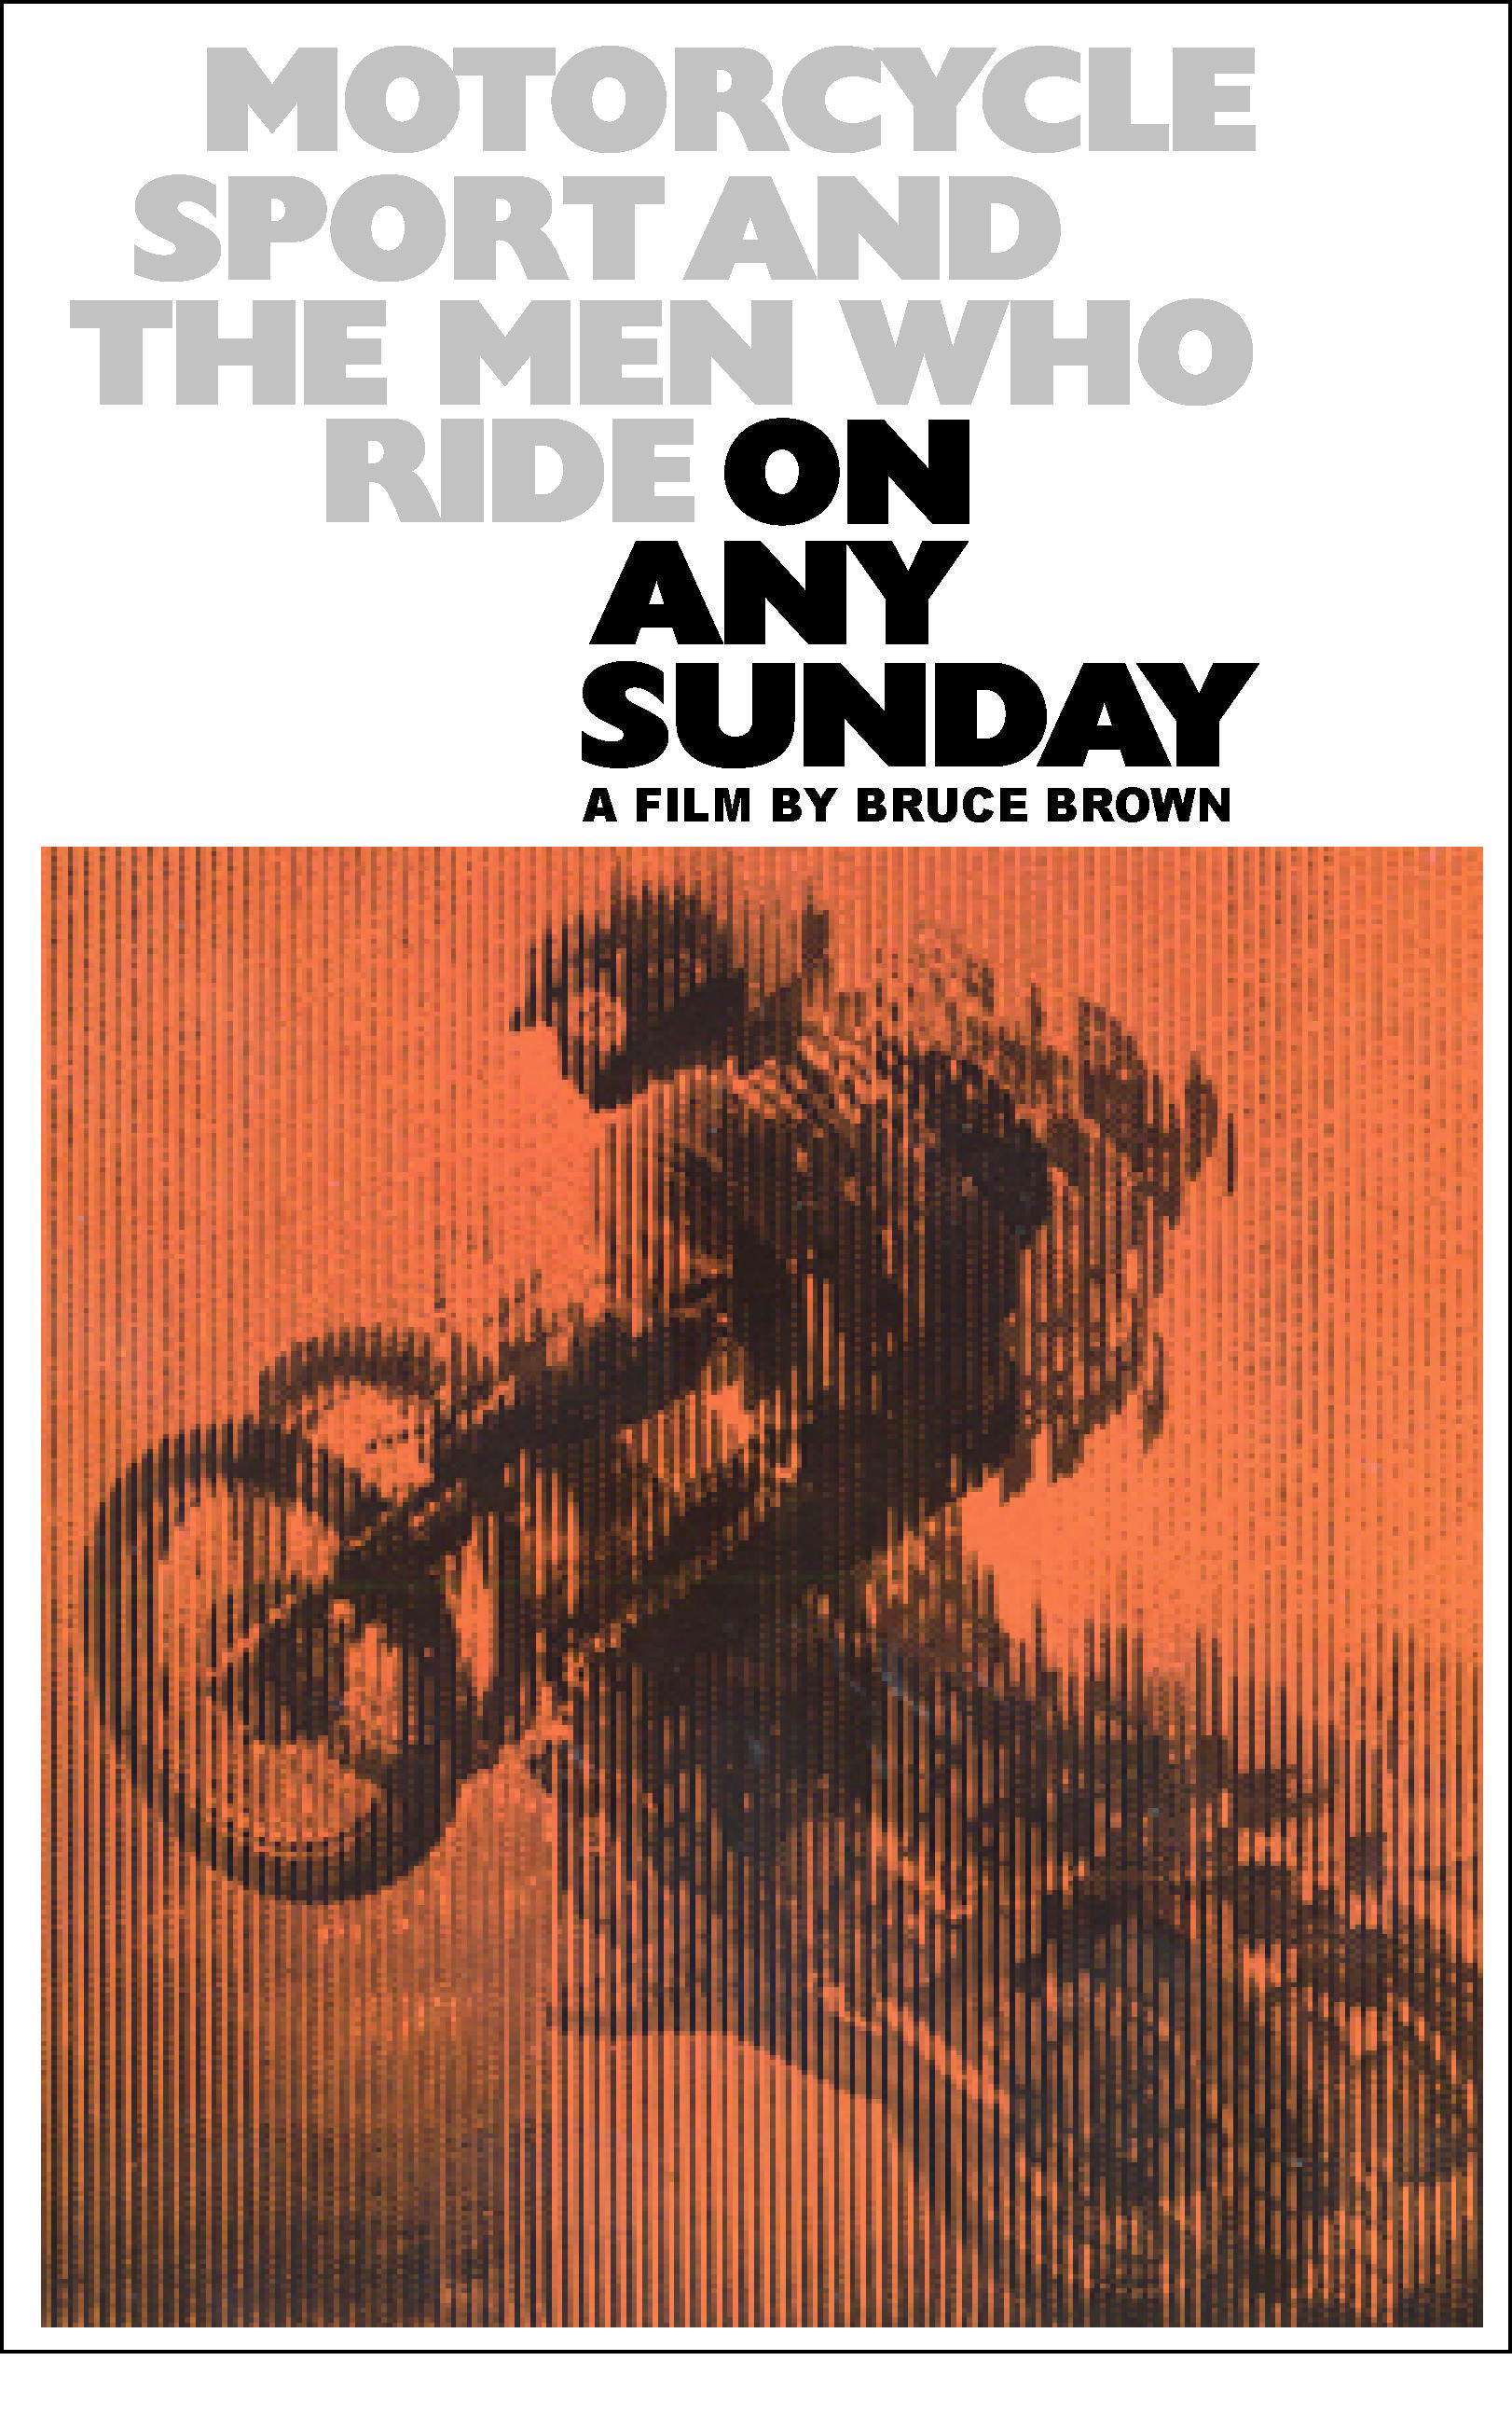 On Any Sunday.  The best dirt bike movie of the 60s. Watch it in the spring and it will charge you up like Warren Miller did for skiing films!